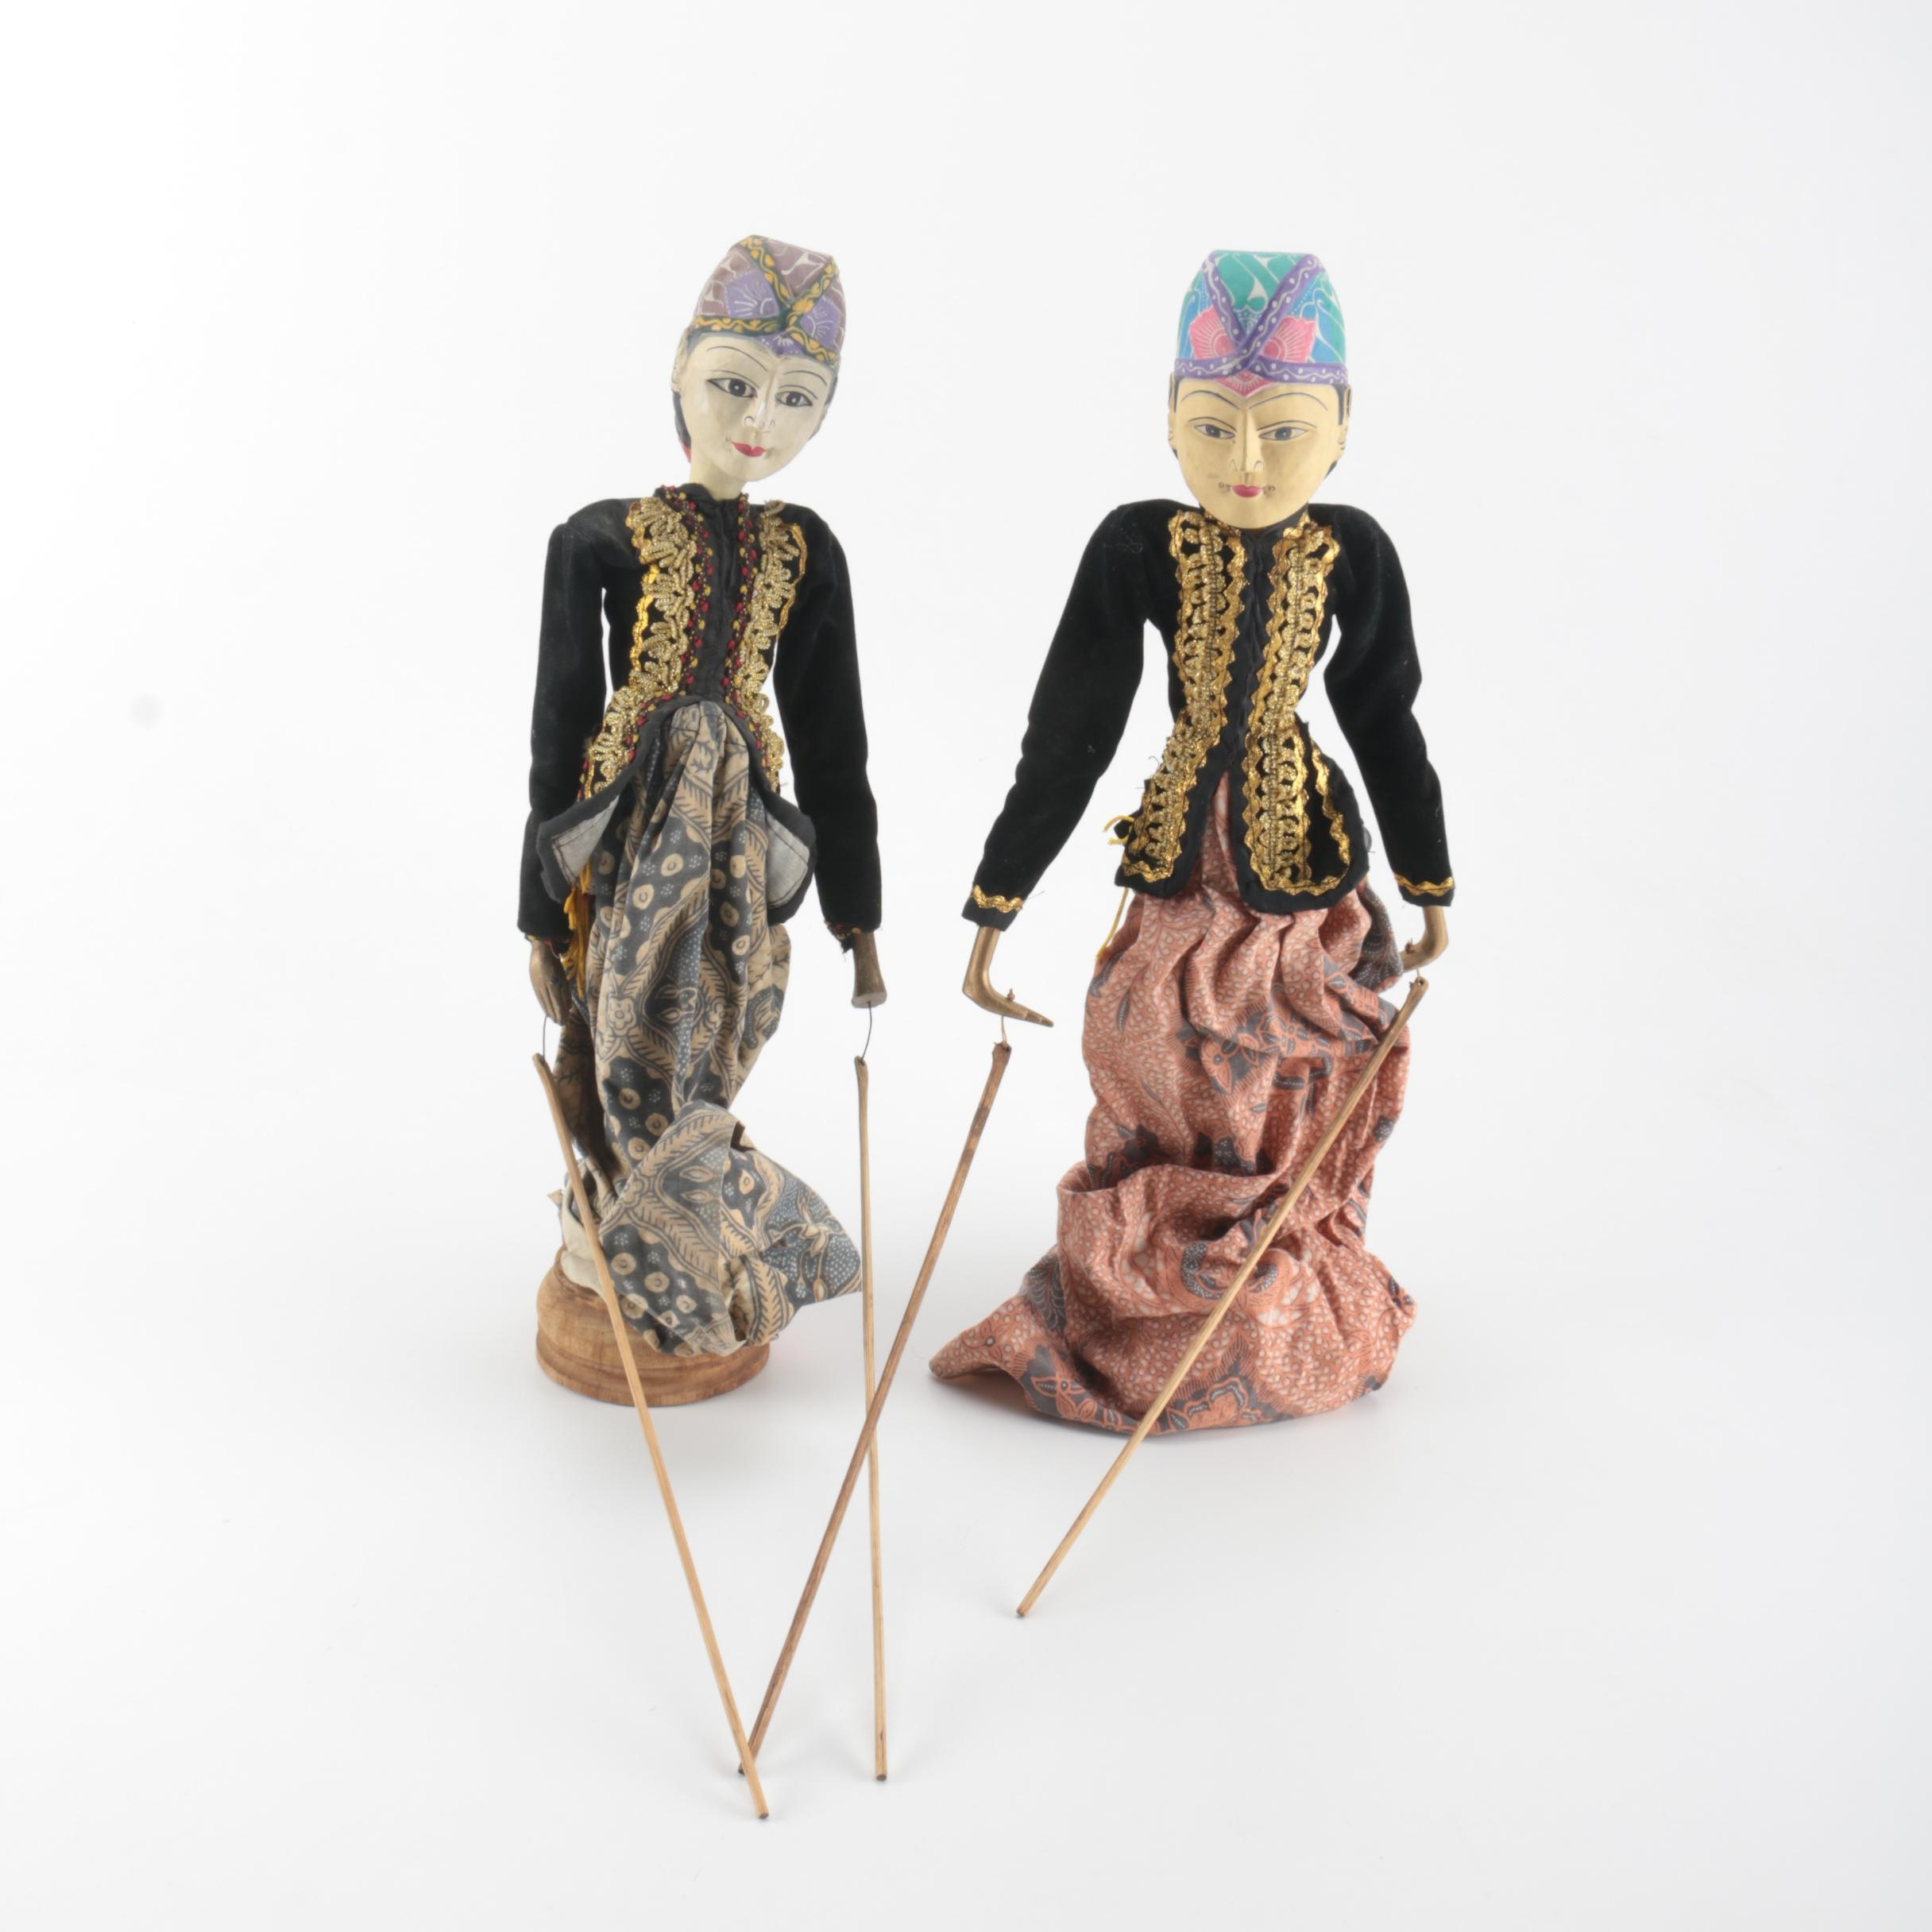 Pair of Asian Puppets